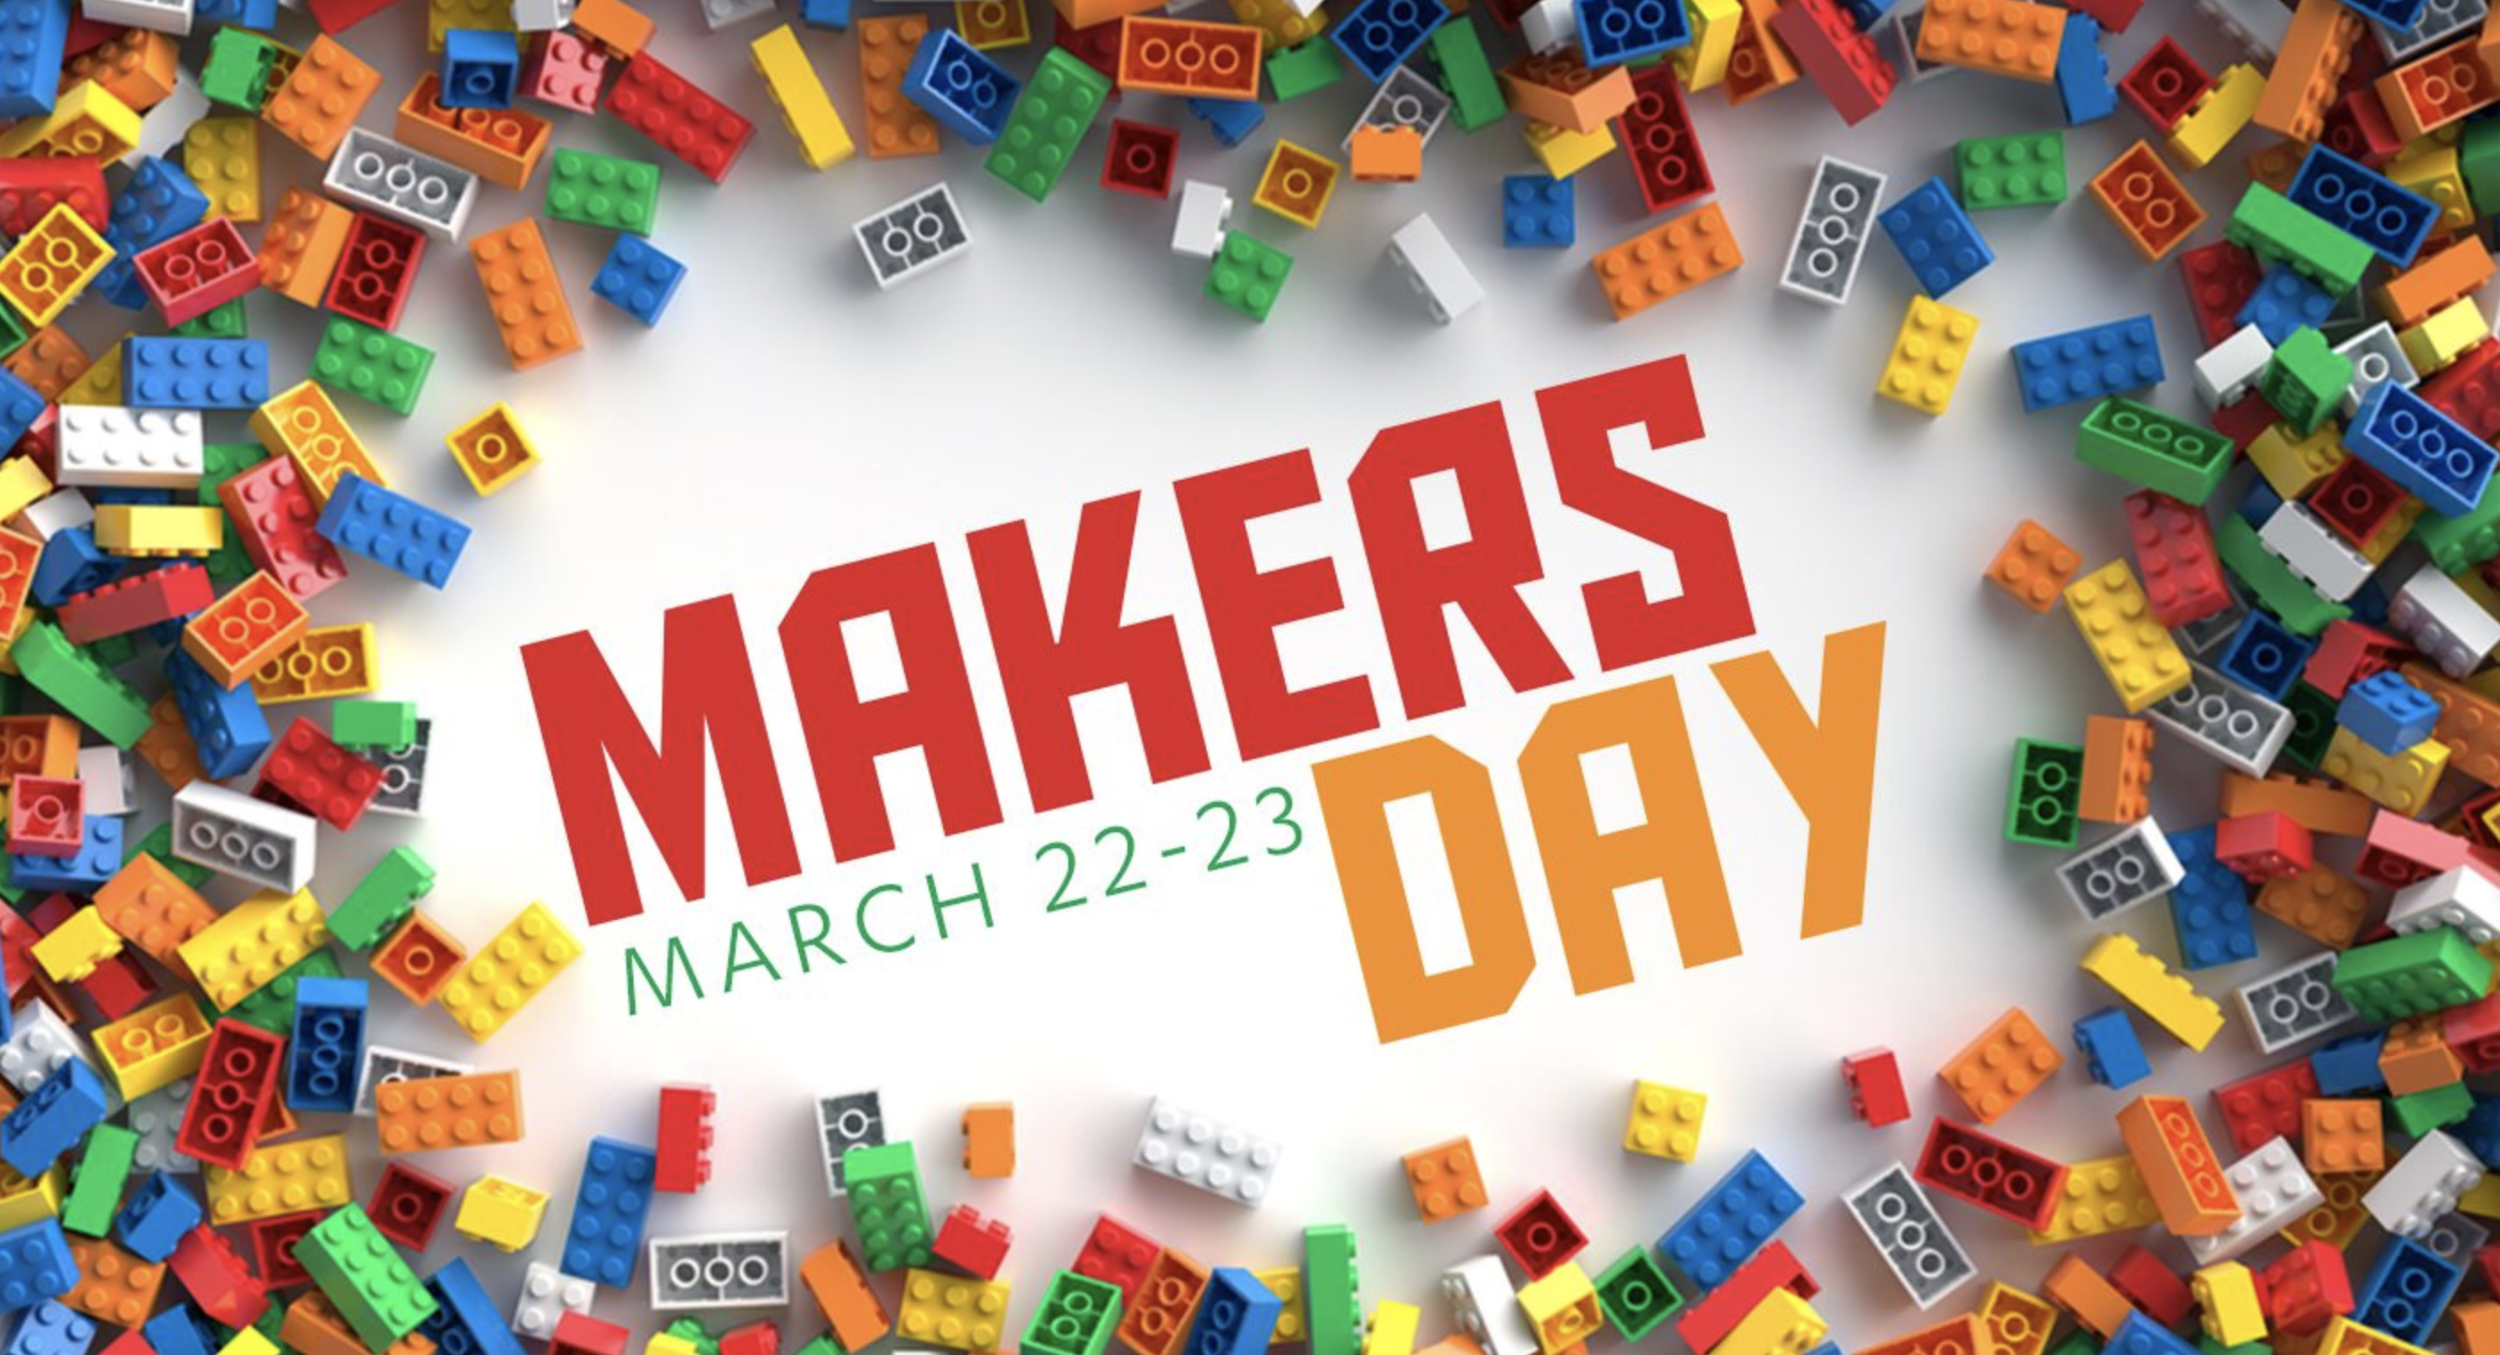 https://lsc.org/makers-day